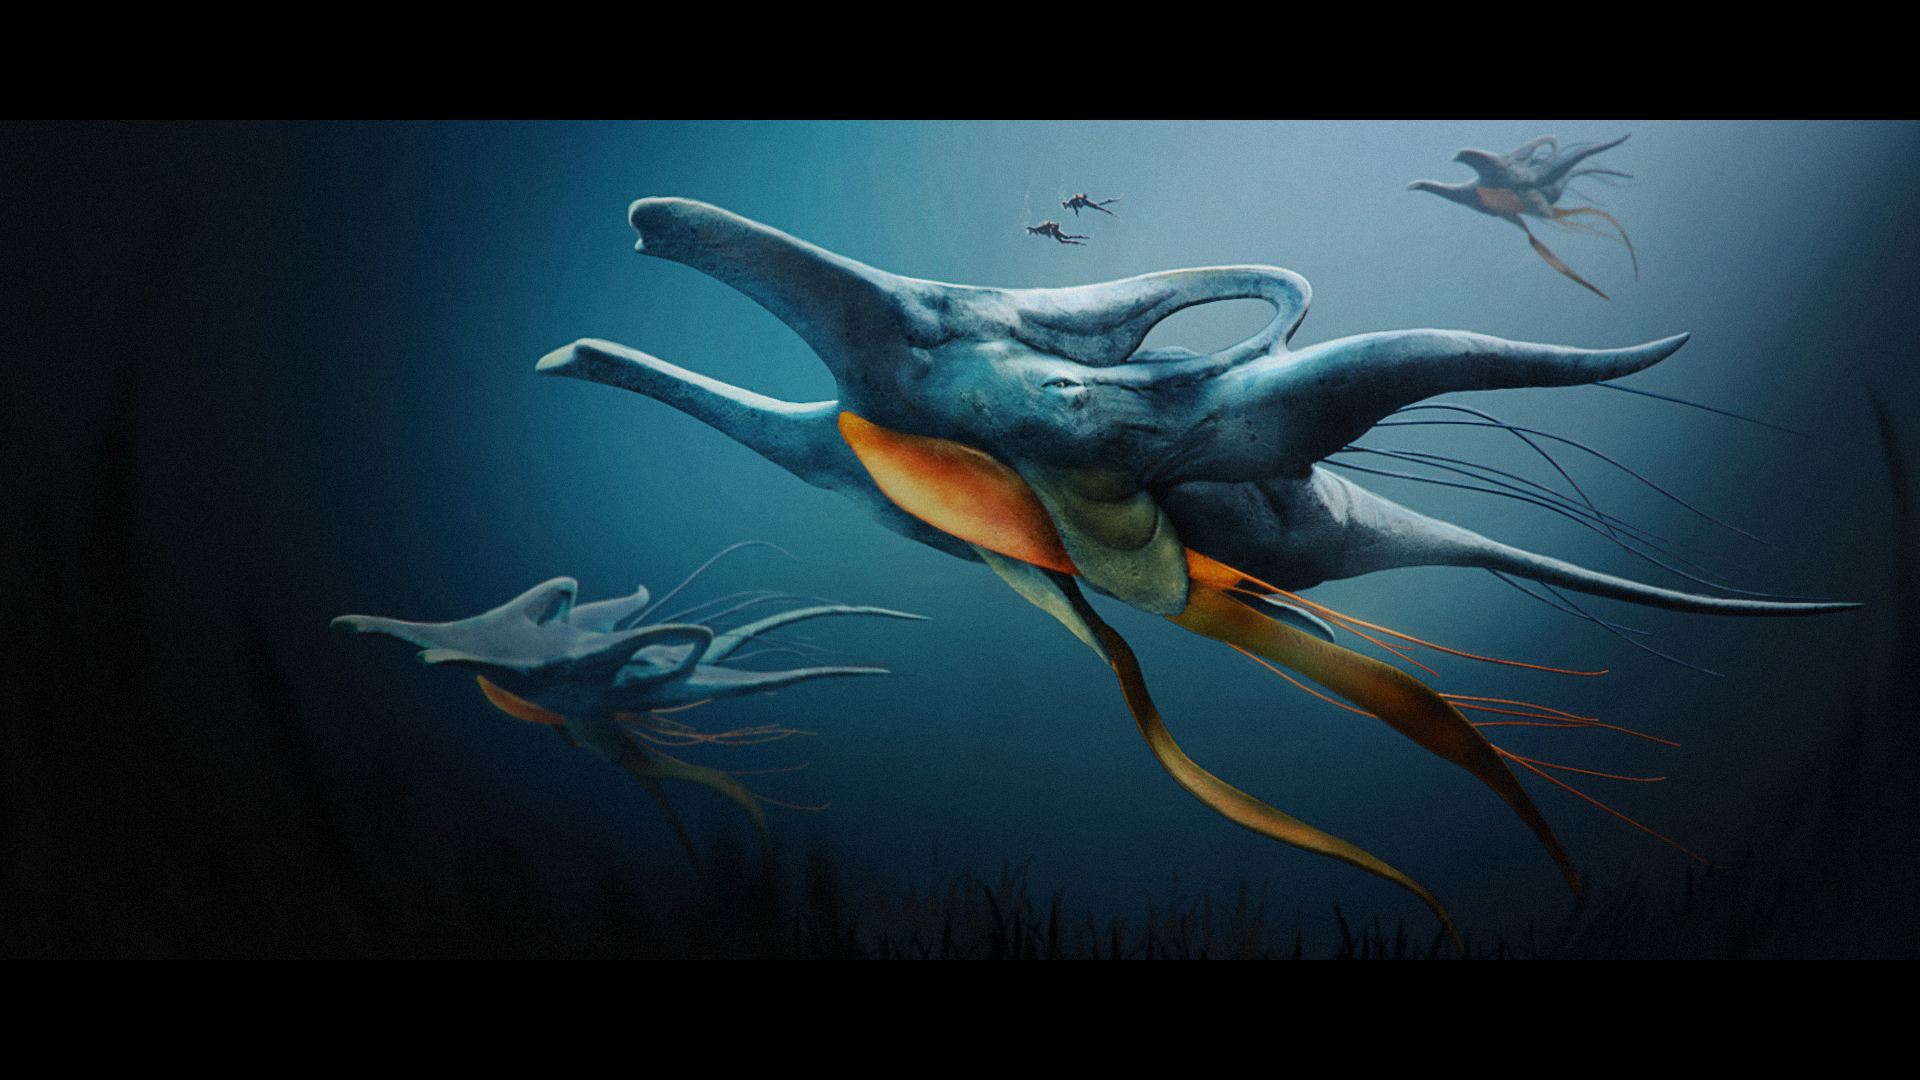 Ocean Beast  Responsible for all aspects except concept by Milan Nikoliv. 2017